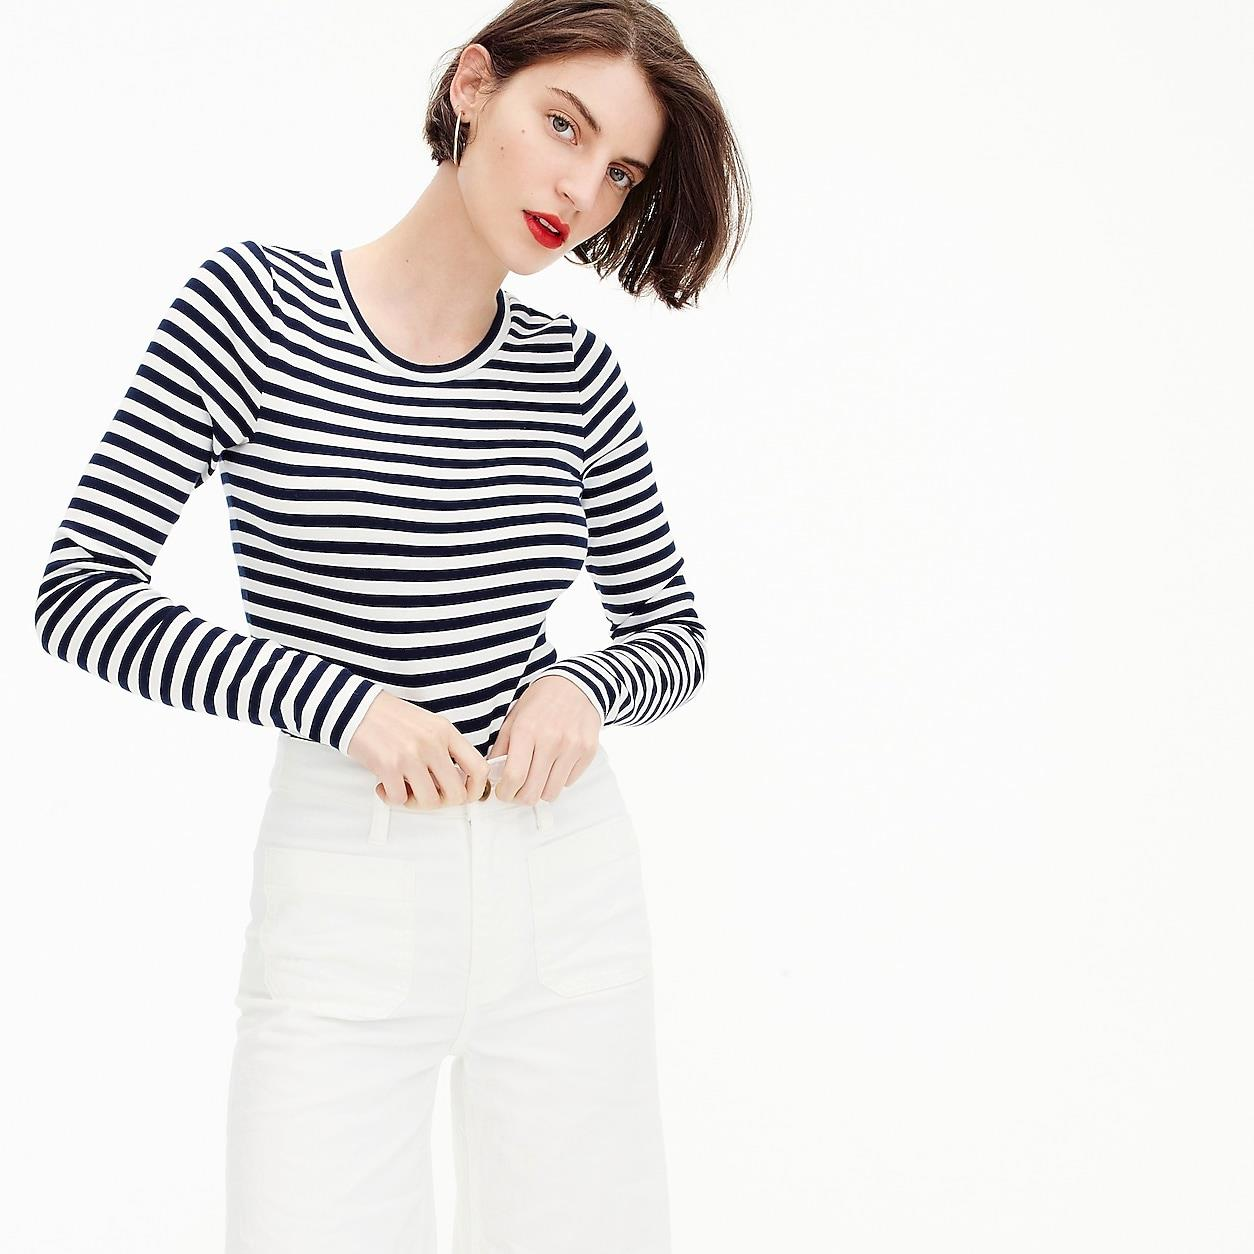 Slim Perfect Long-Sleeve T-Shirt In Stripes